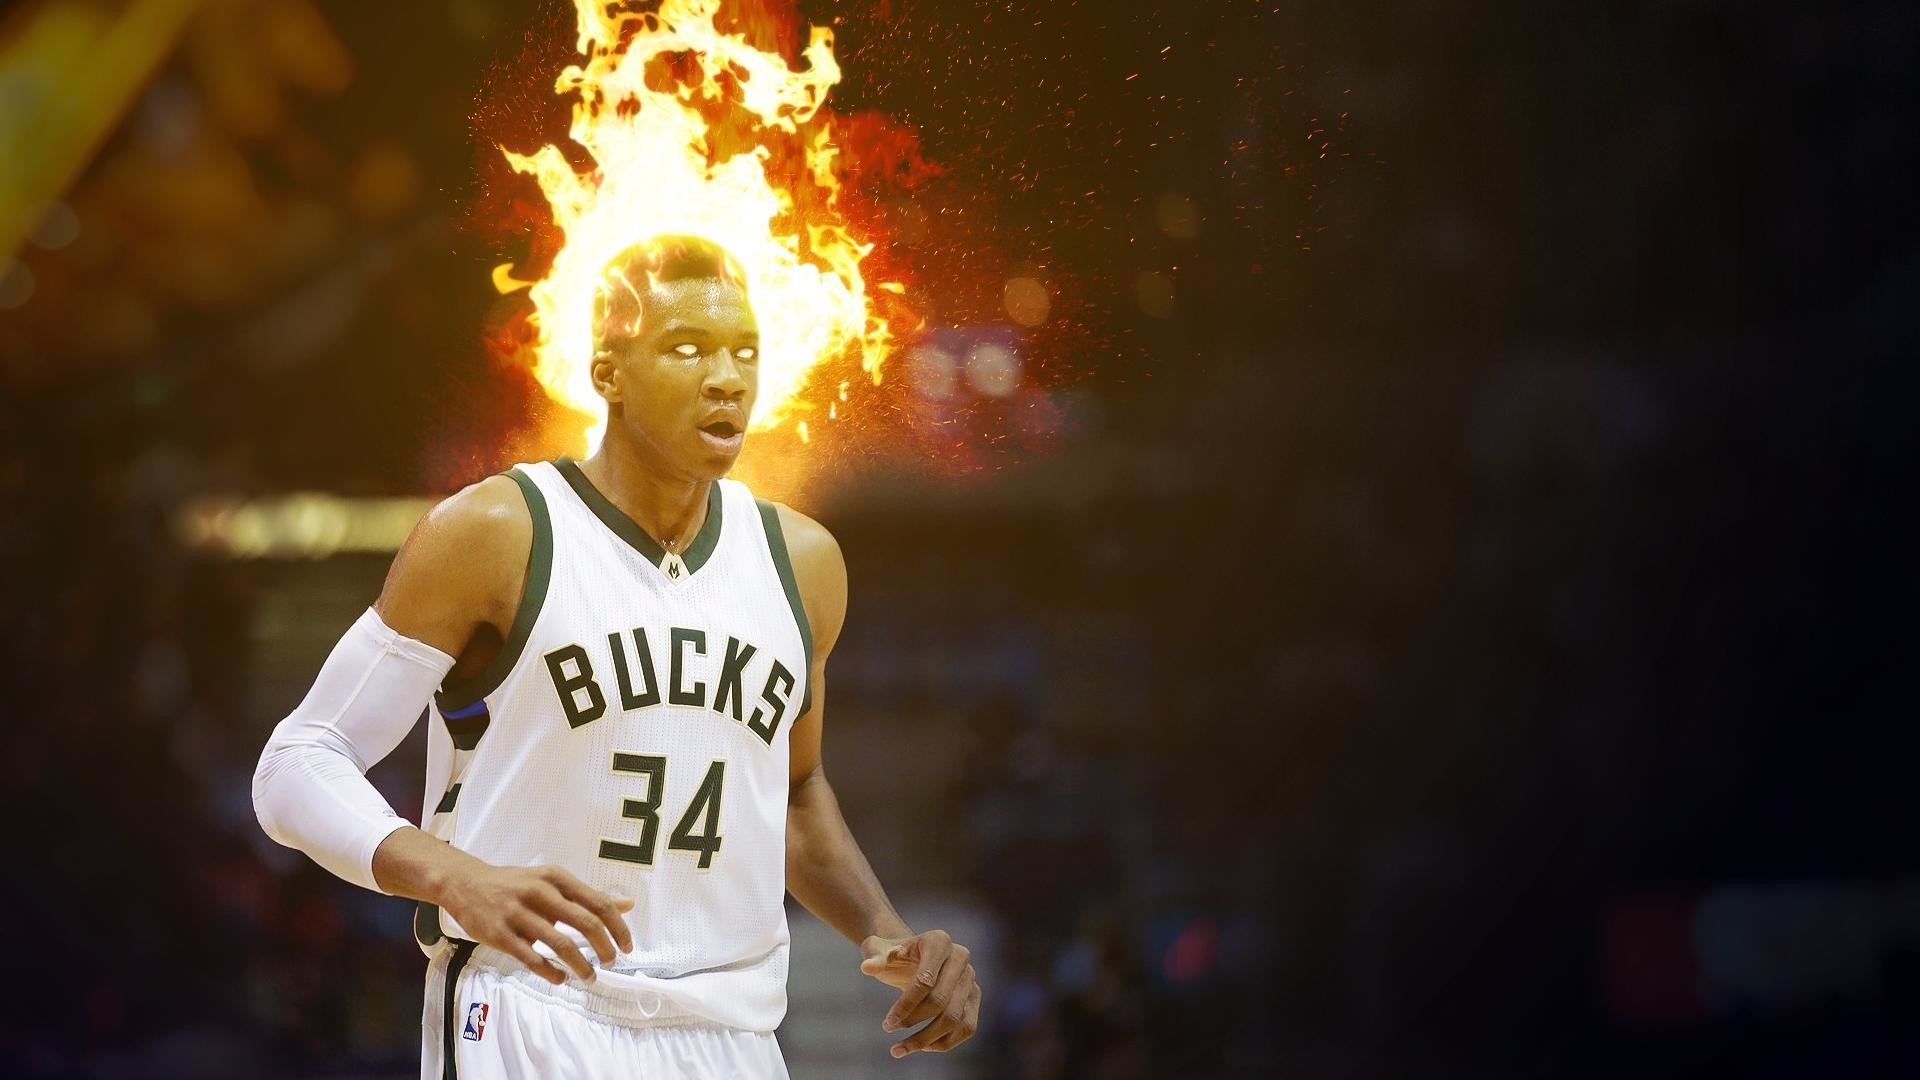 Milwaukee Bucks Wallpaper New Logo 78 Images